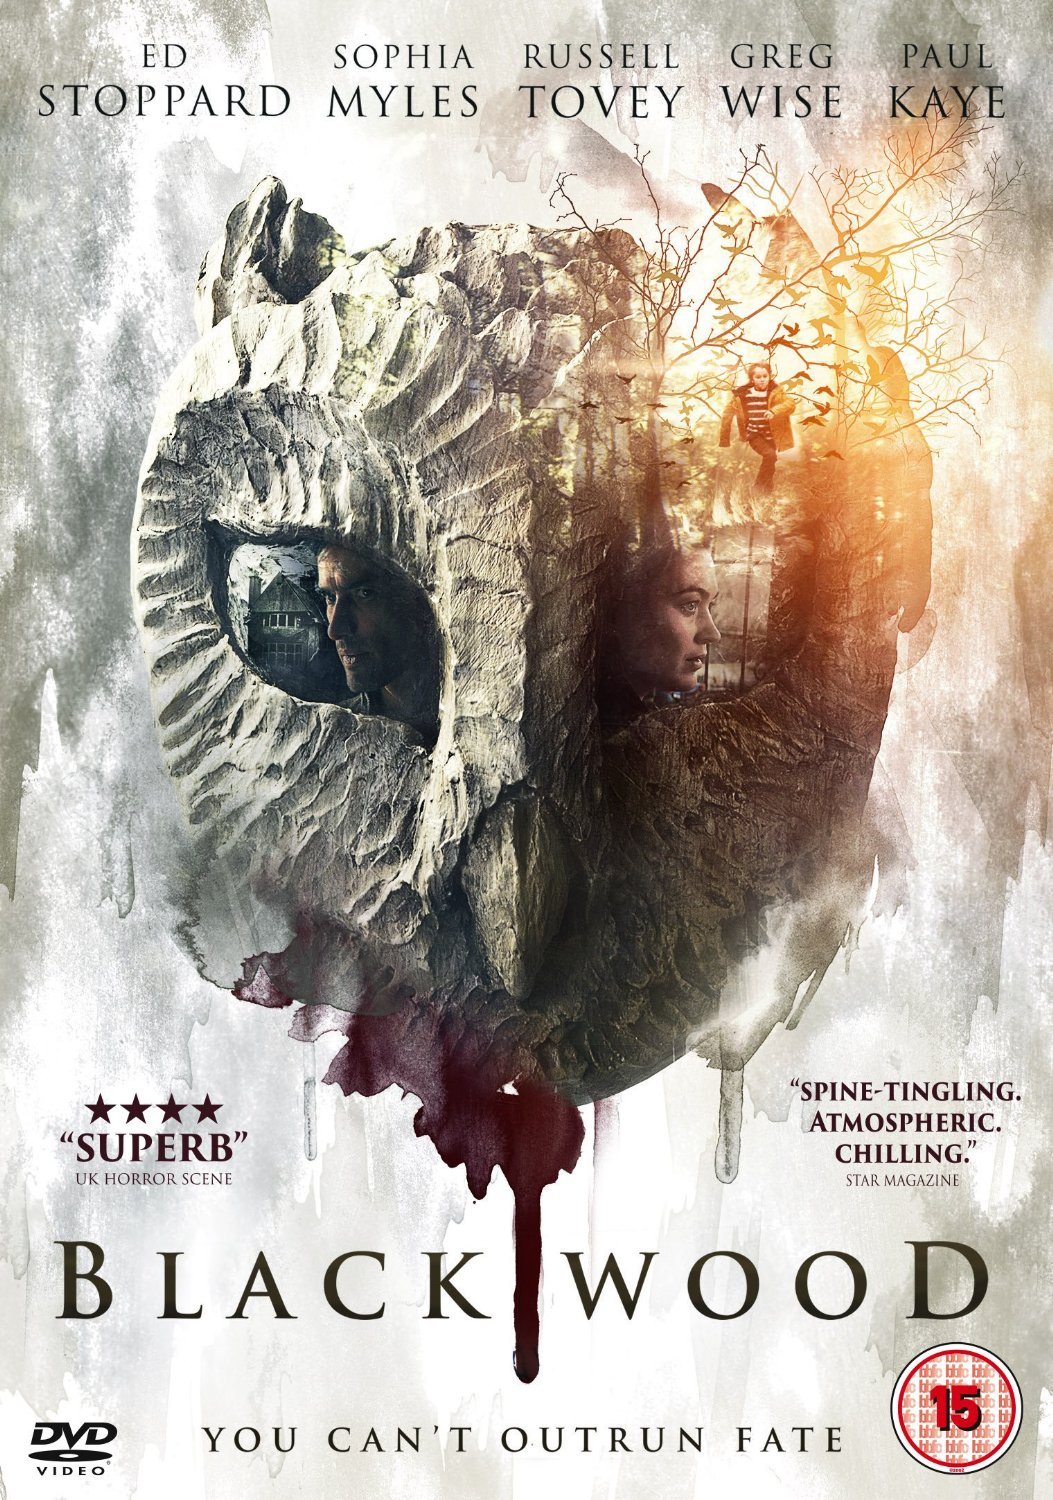 Blackwood DVD